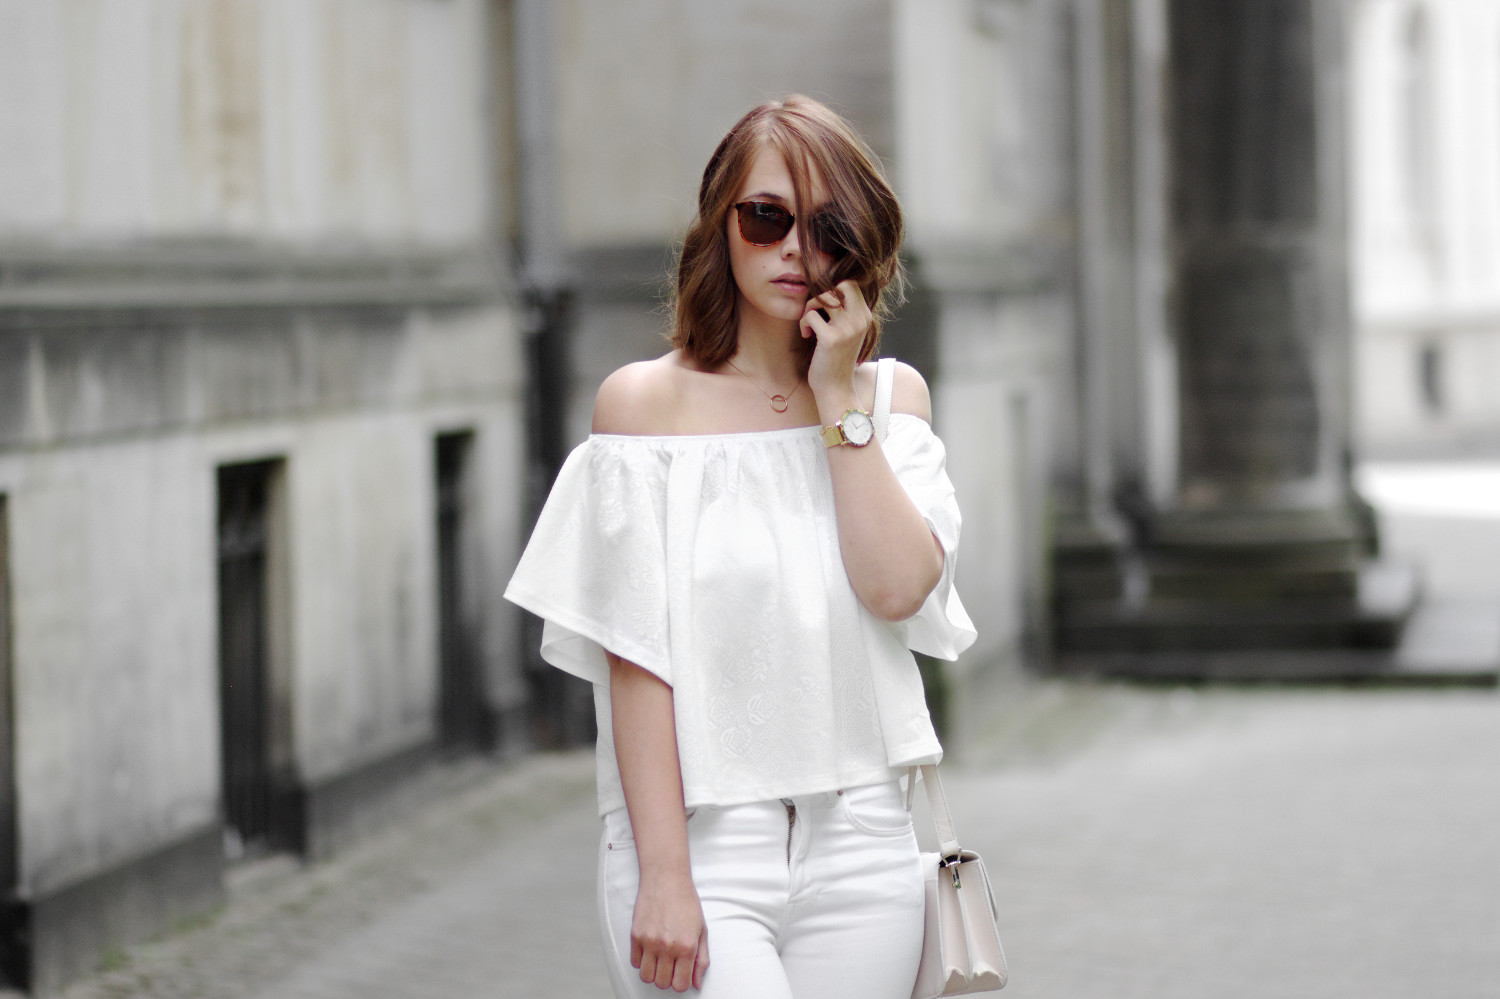 Bezaubernde Nana, bezauberndenana.de, Fashionblog, All White Outfit, weiße Off Shoulder Top, weiße ripped Jeans, Lace Up Pumps, Rosefiel Watch, Streetstyle, weißes Outfit für den Frühling